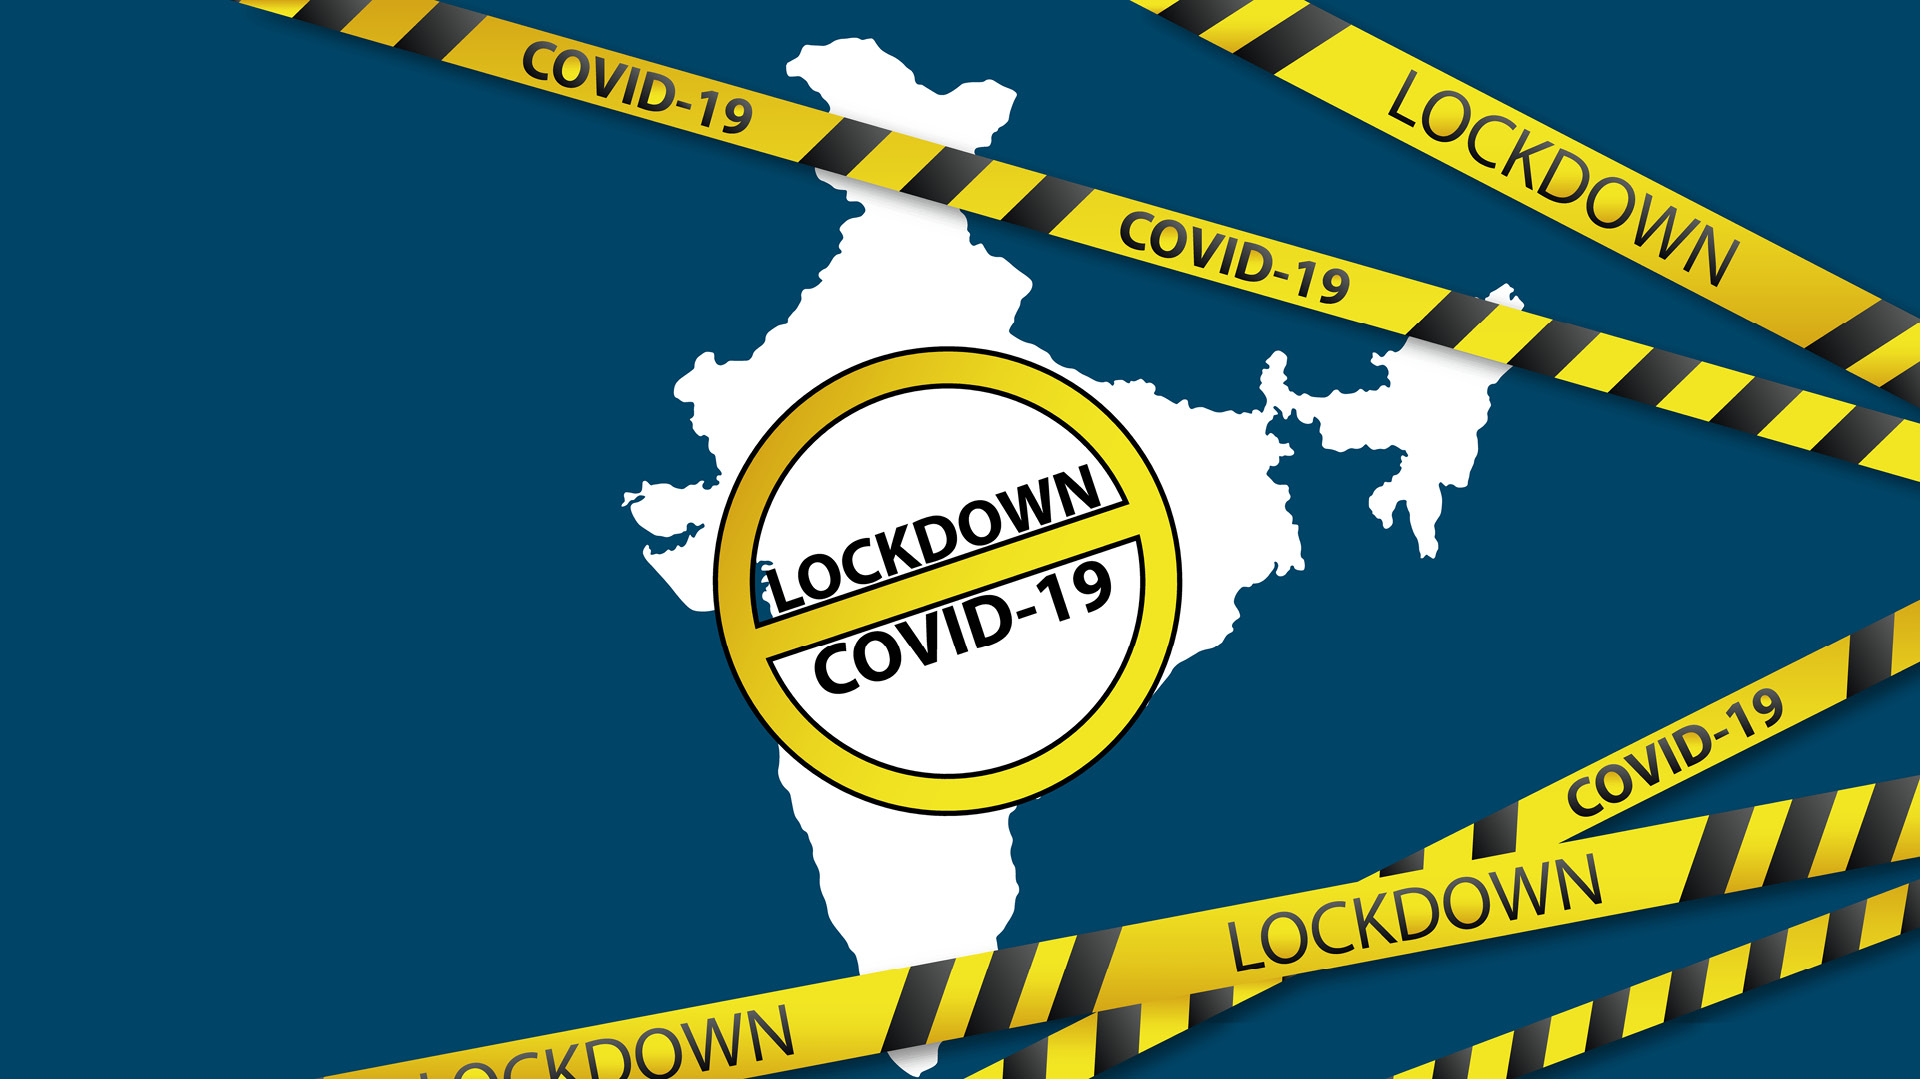 INDIA READY FOR FIRST OF 3-PHASE UNLOCK PLAN